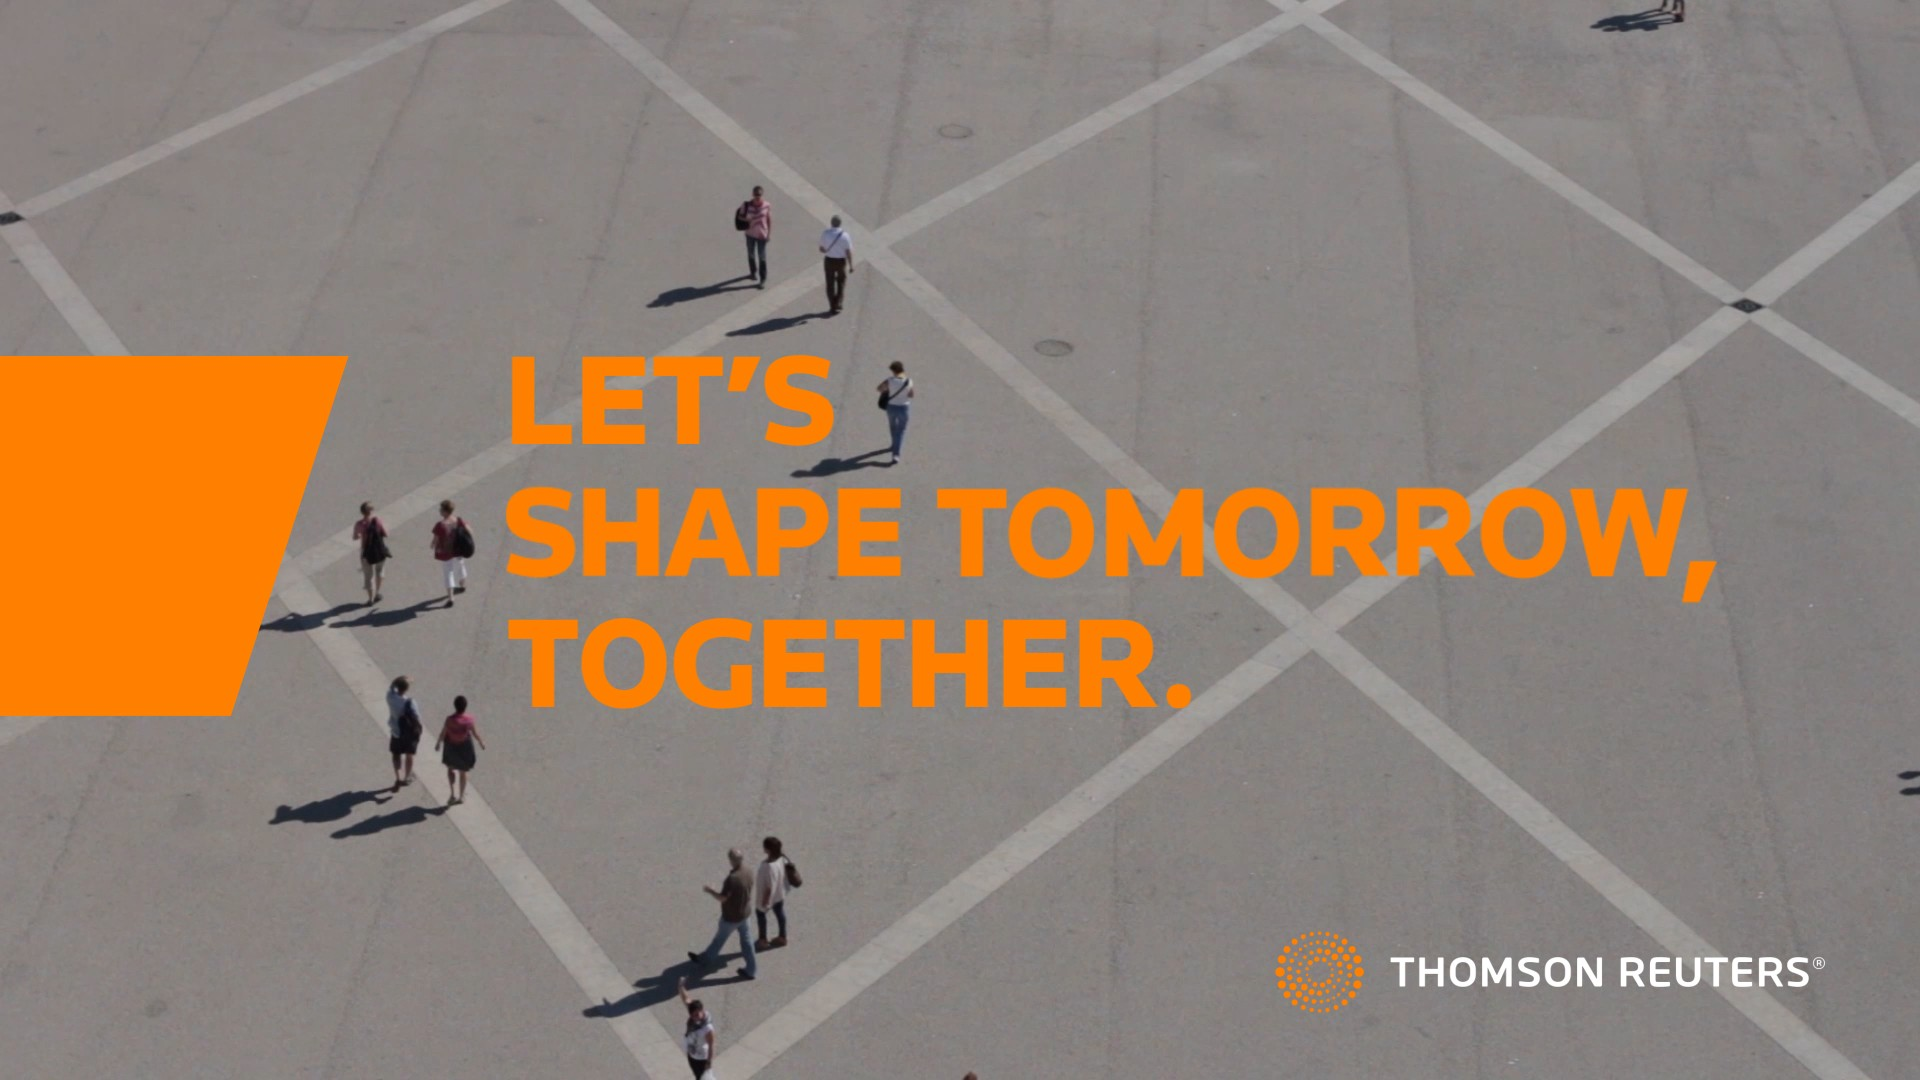 Together tomorrow